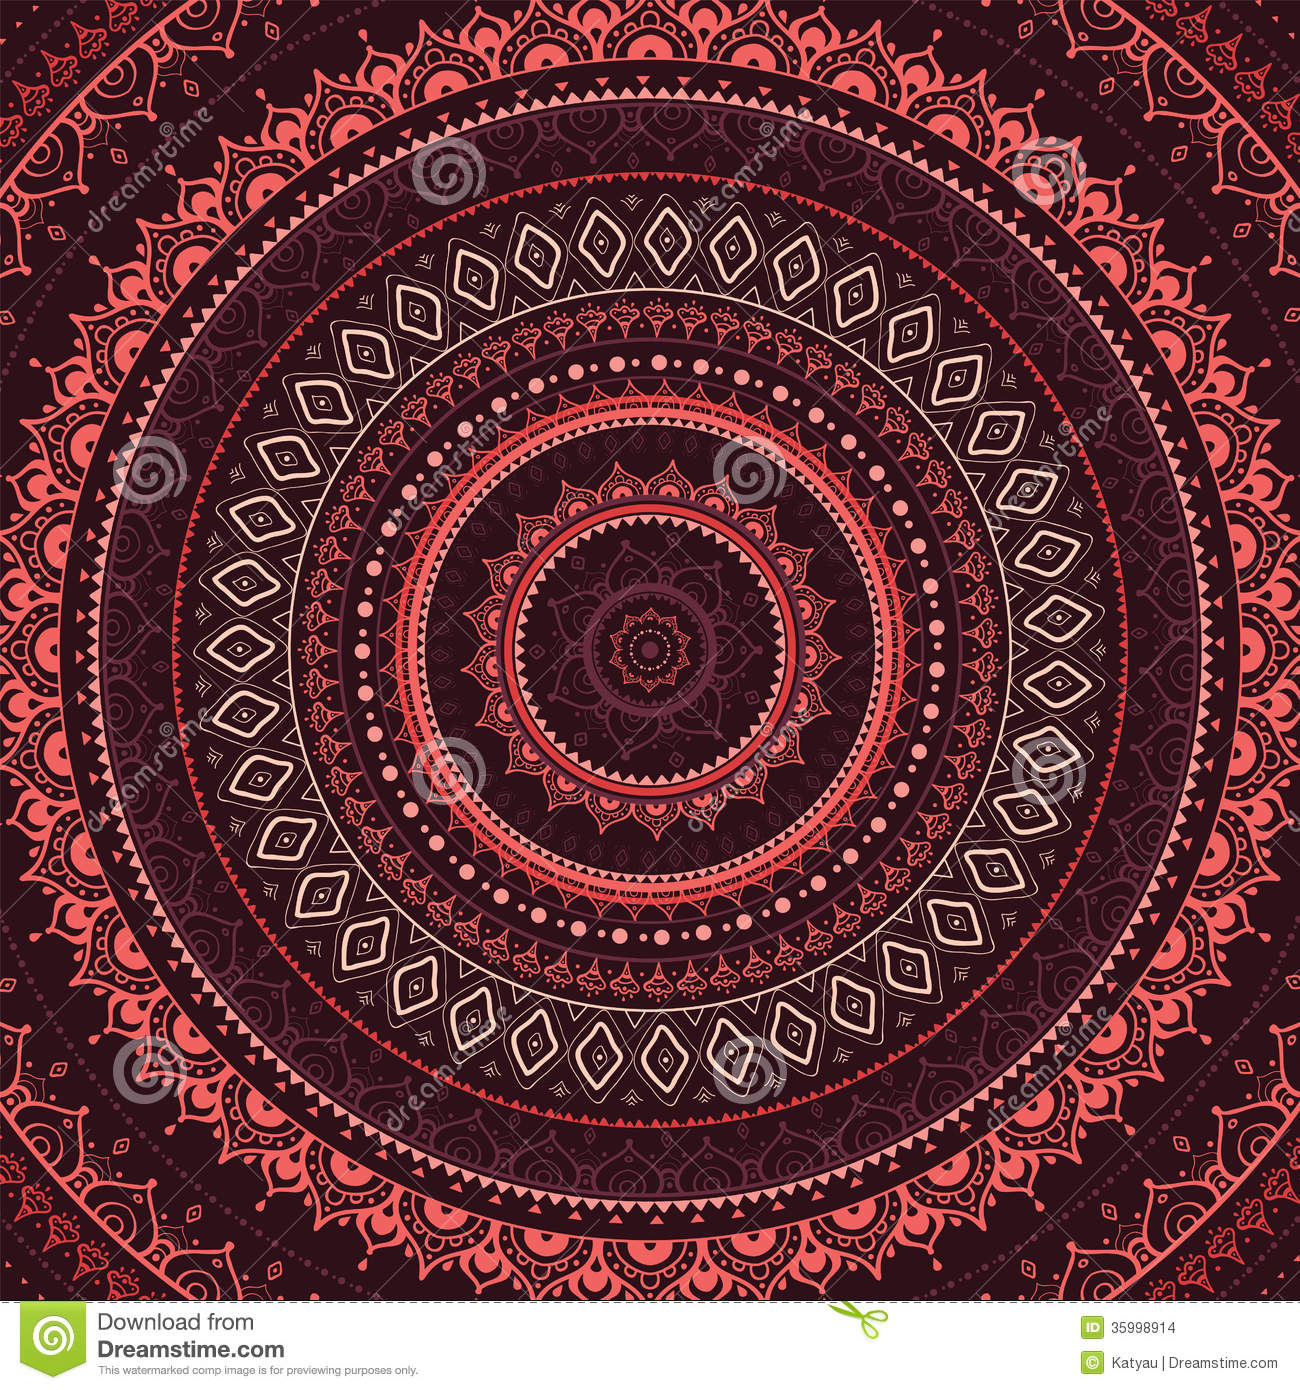 Download Mandala Indian Decorative Pattern Stock Illustration